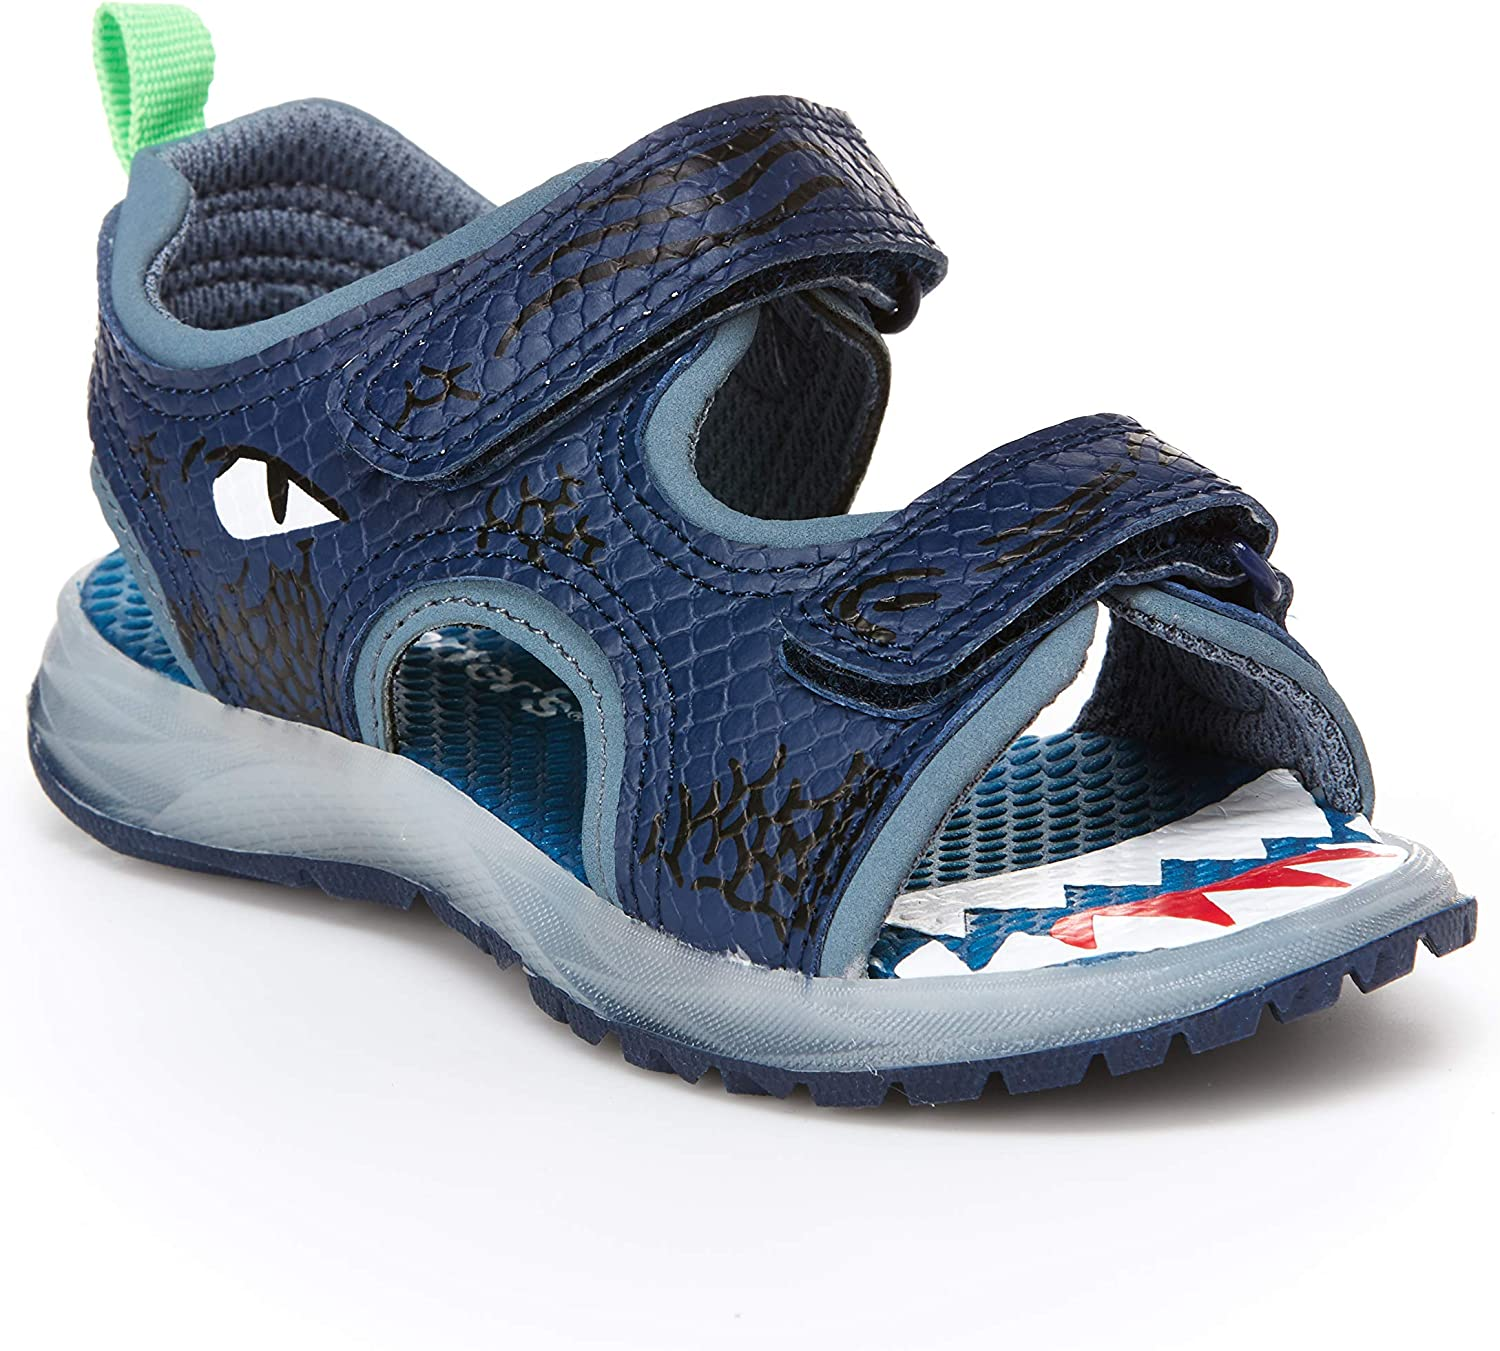 Carter's Kids Boy's Dilan Lighted Sandal with Double Adjustable Straps